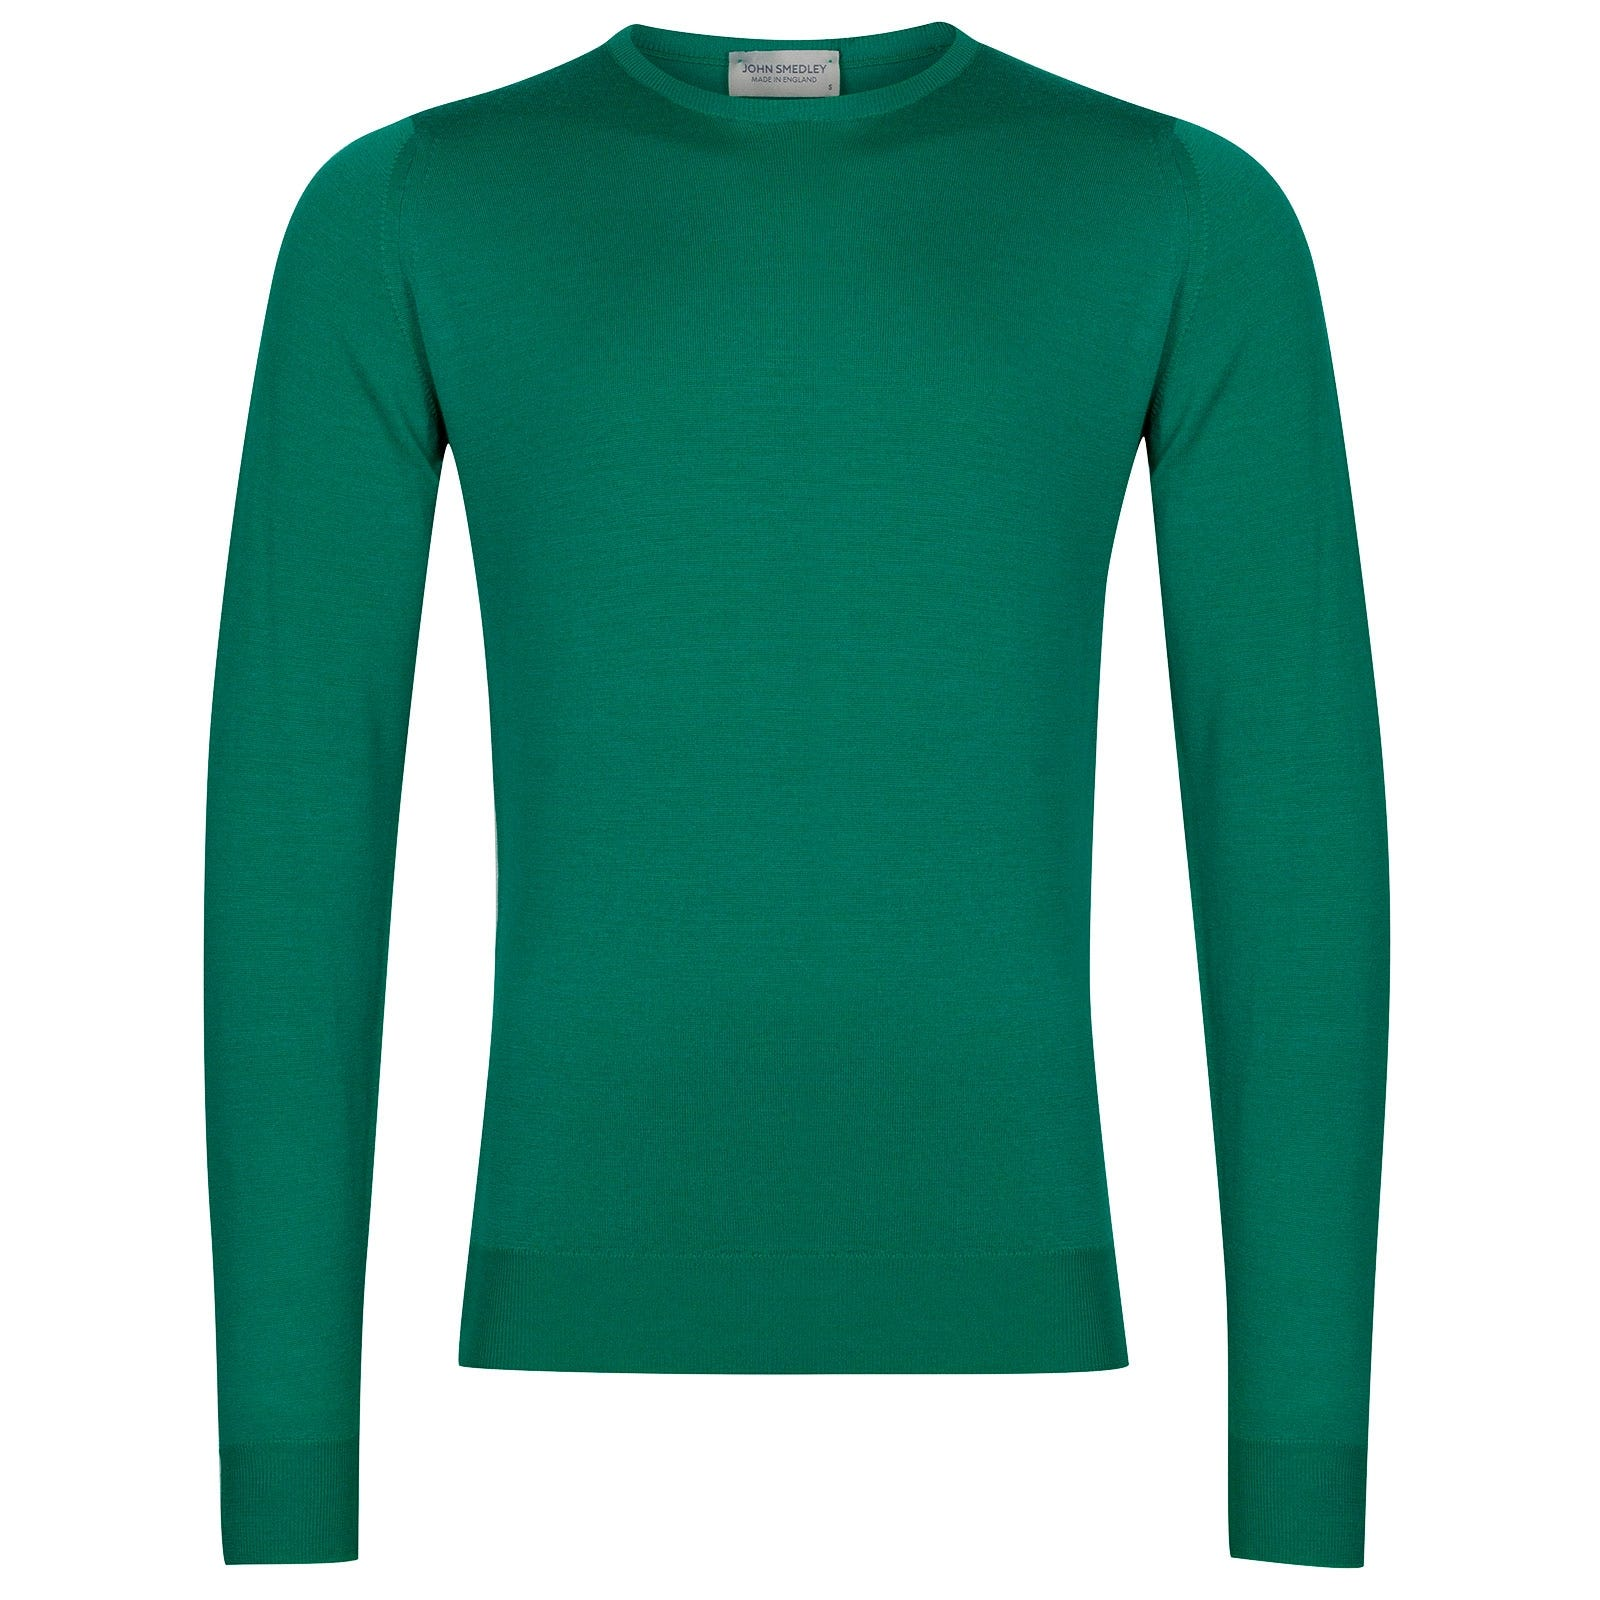 John Smedley Lundy Merino Wool Pullover in Boron Green-S